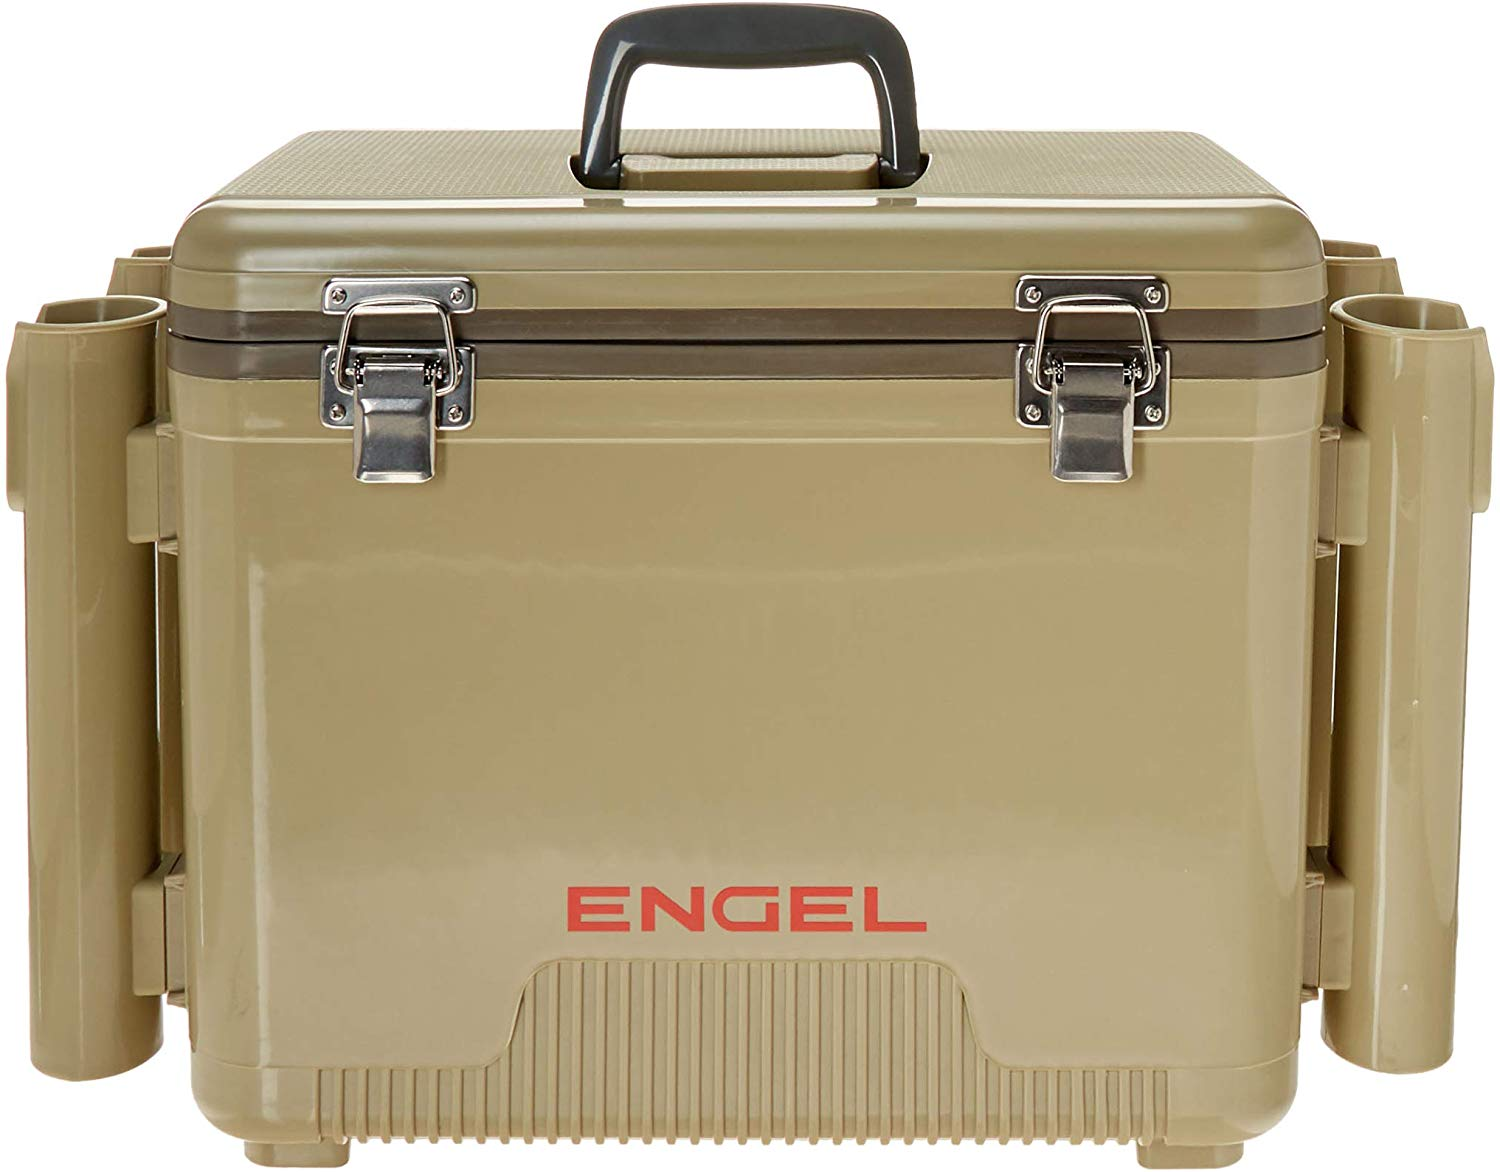 Engel cooler/ dry box with 4 rod holders- 19 qt- white